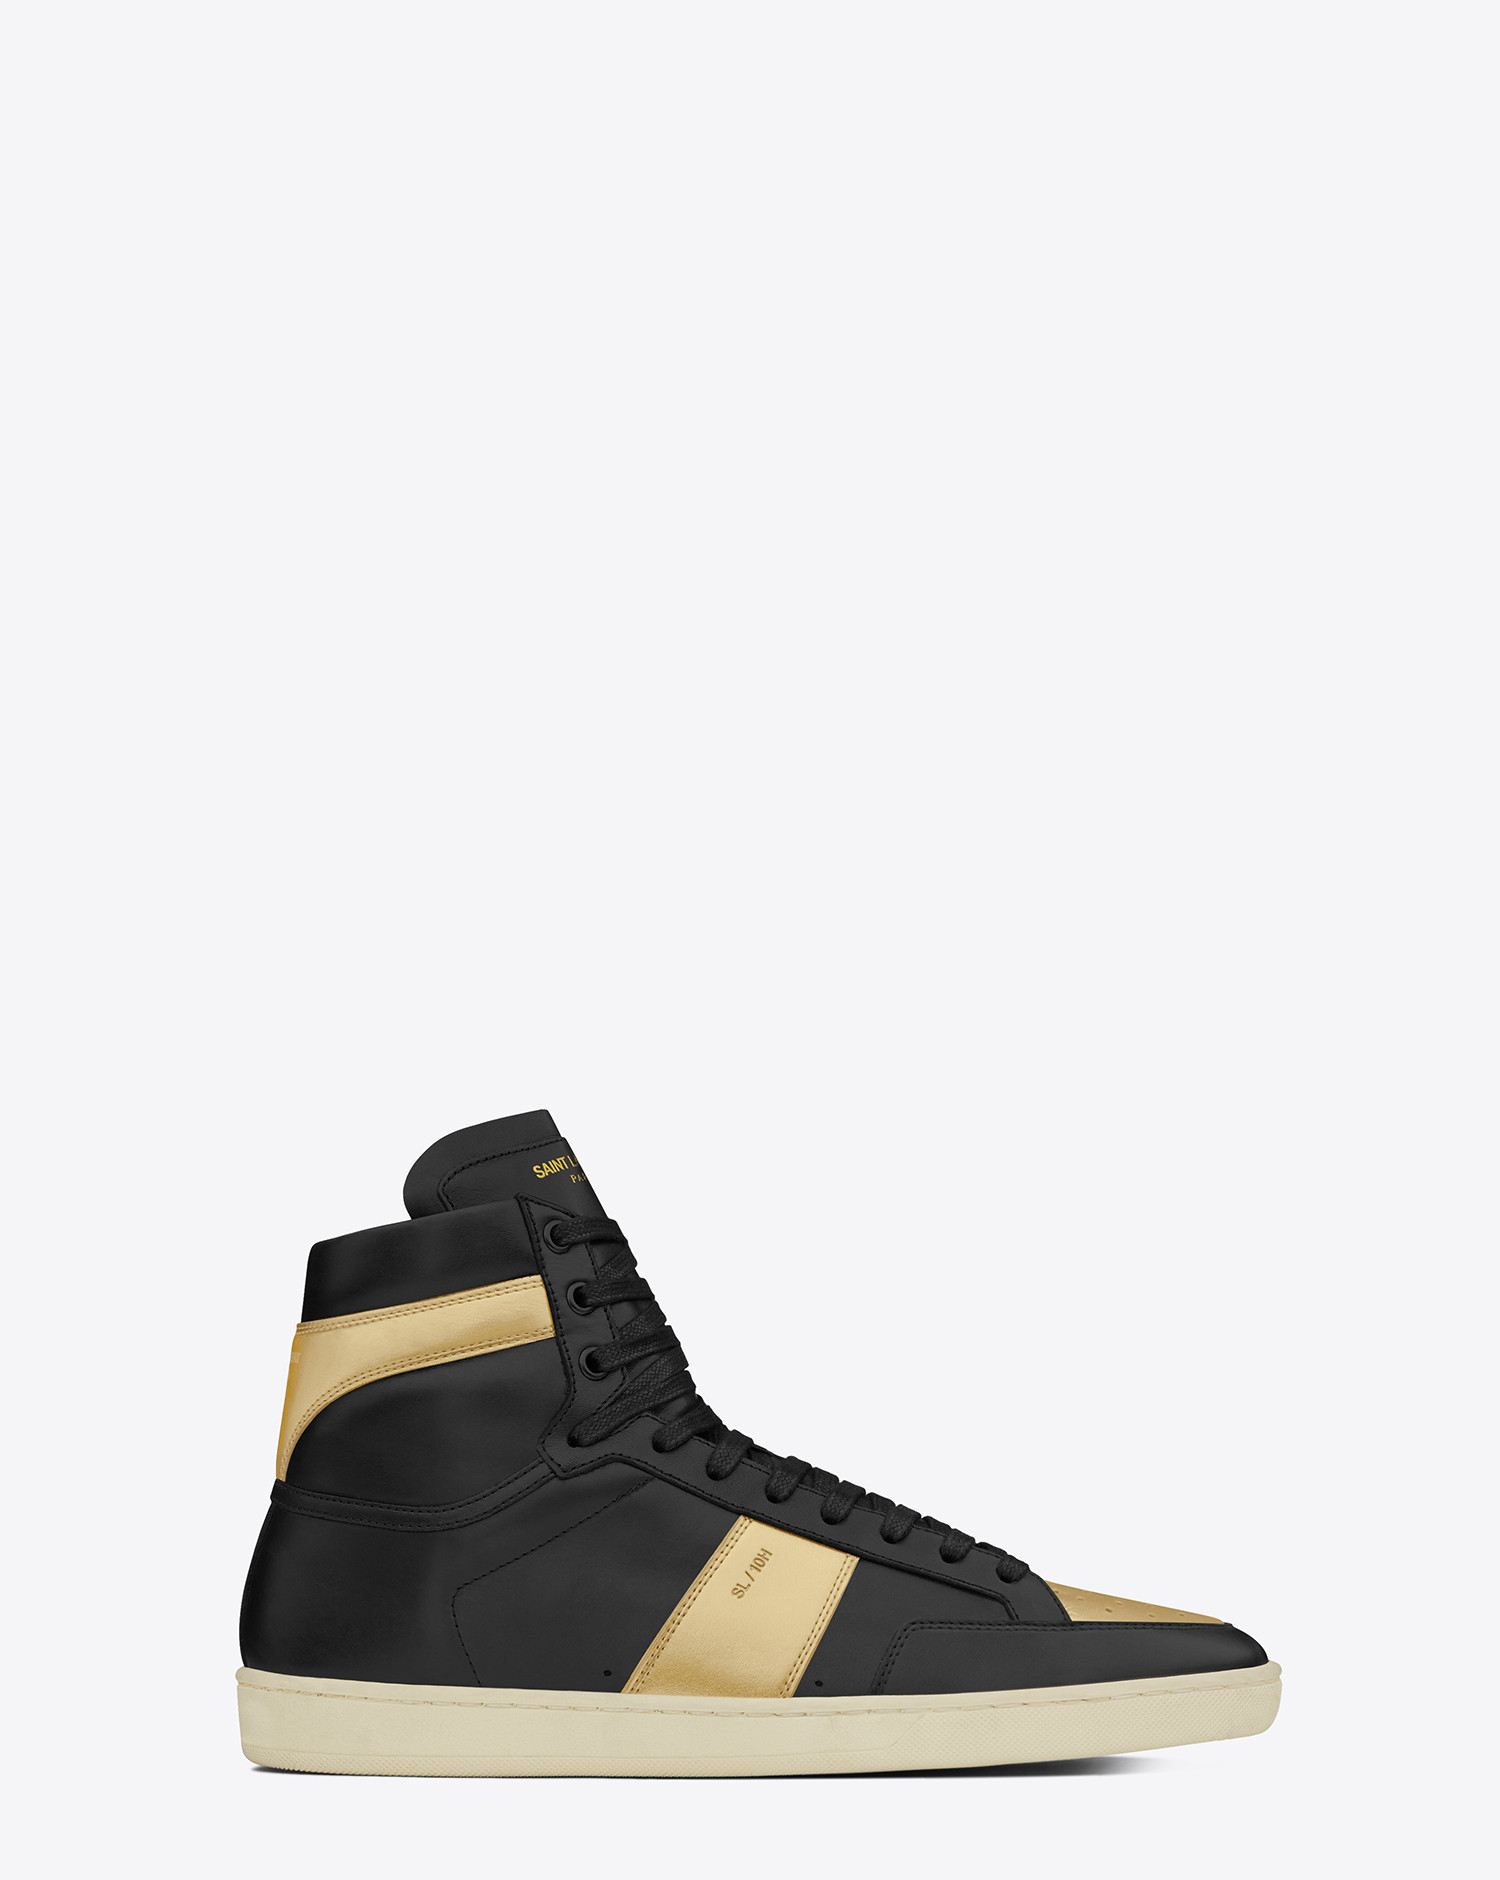 saint laurent signature court classic leather sneakers in black for men lyst. Black Bedroom Furniture Sets. Home Design Ideas